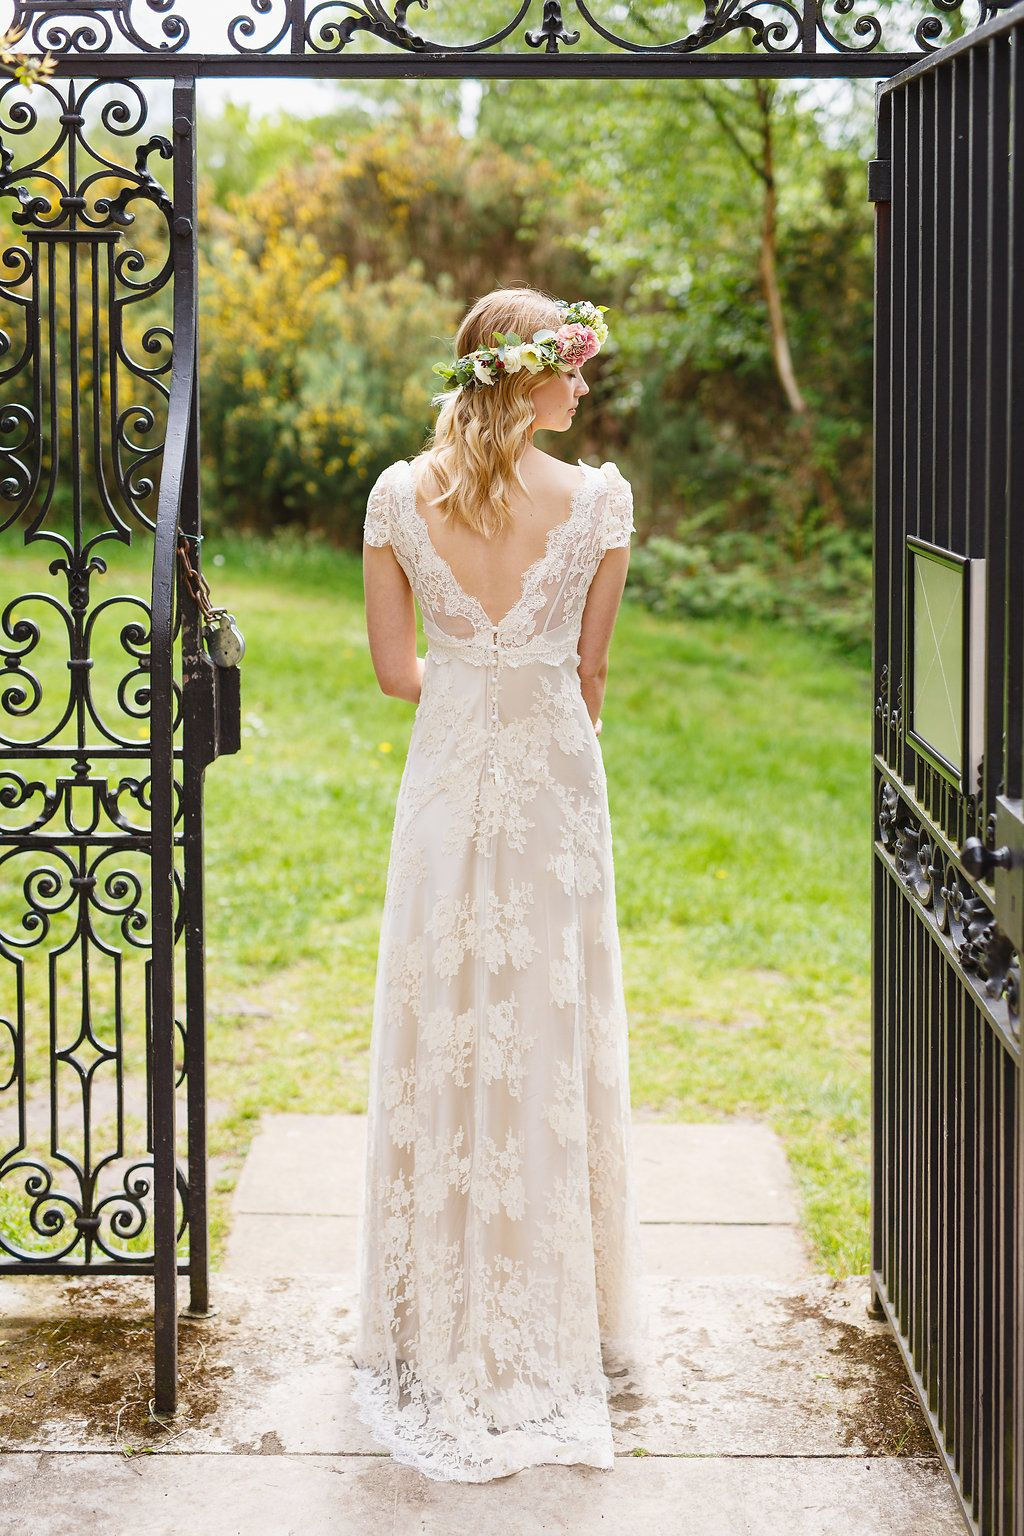 French Lace Boho Style Wedding Dress By Dana Bolton Svatebni Saty